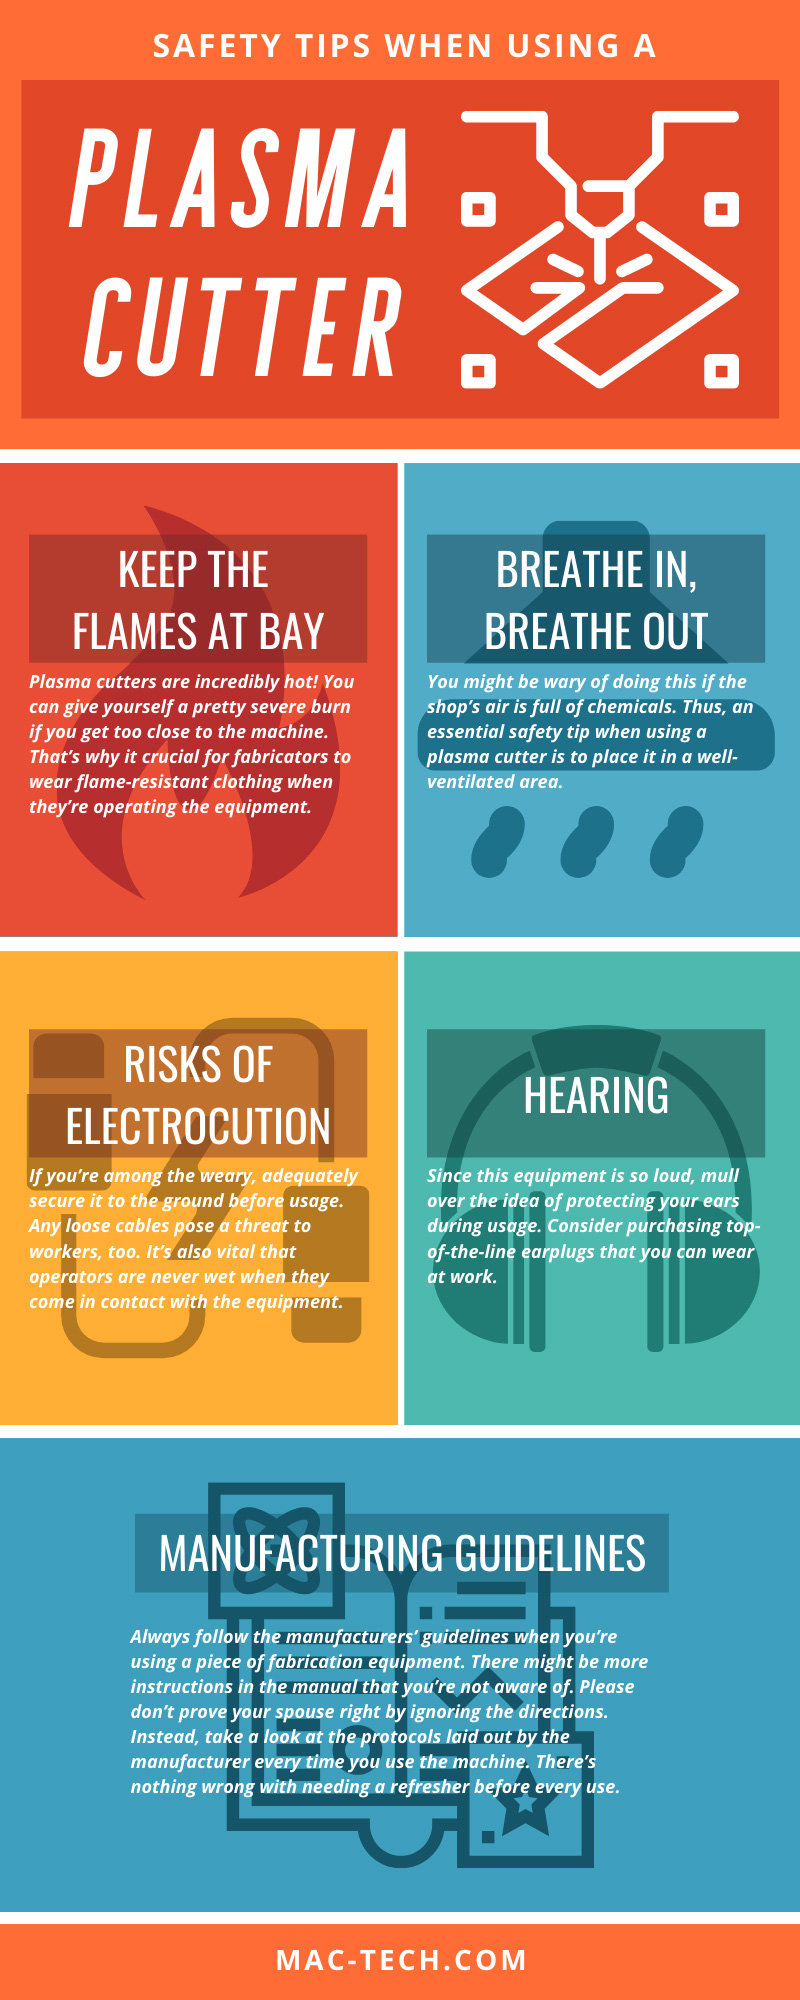 Safety Tips When Using a Plasma Cutter